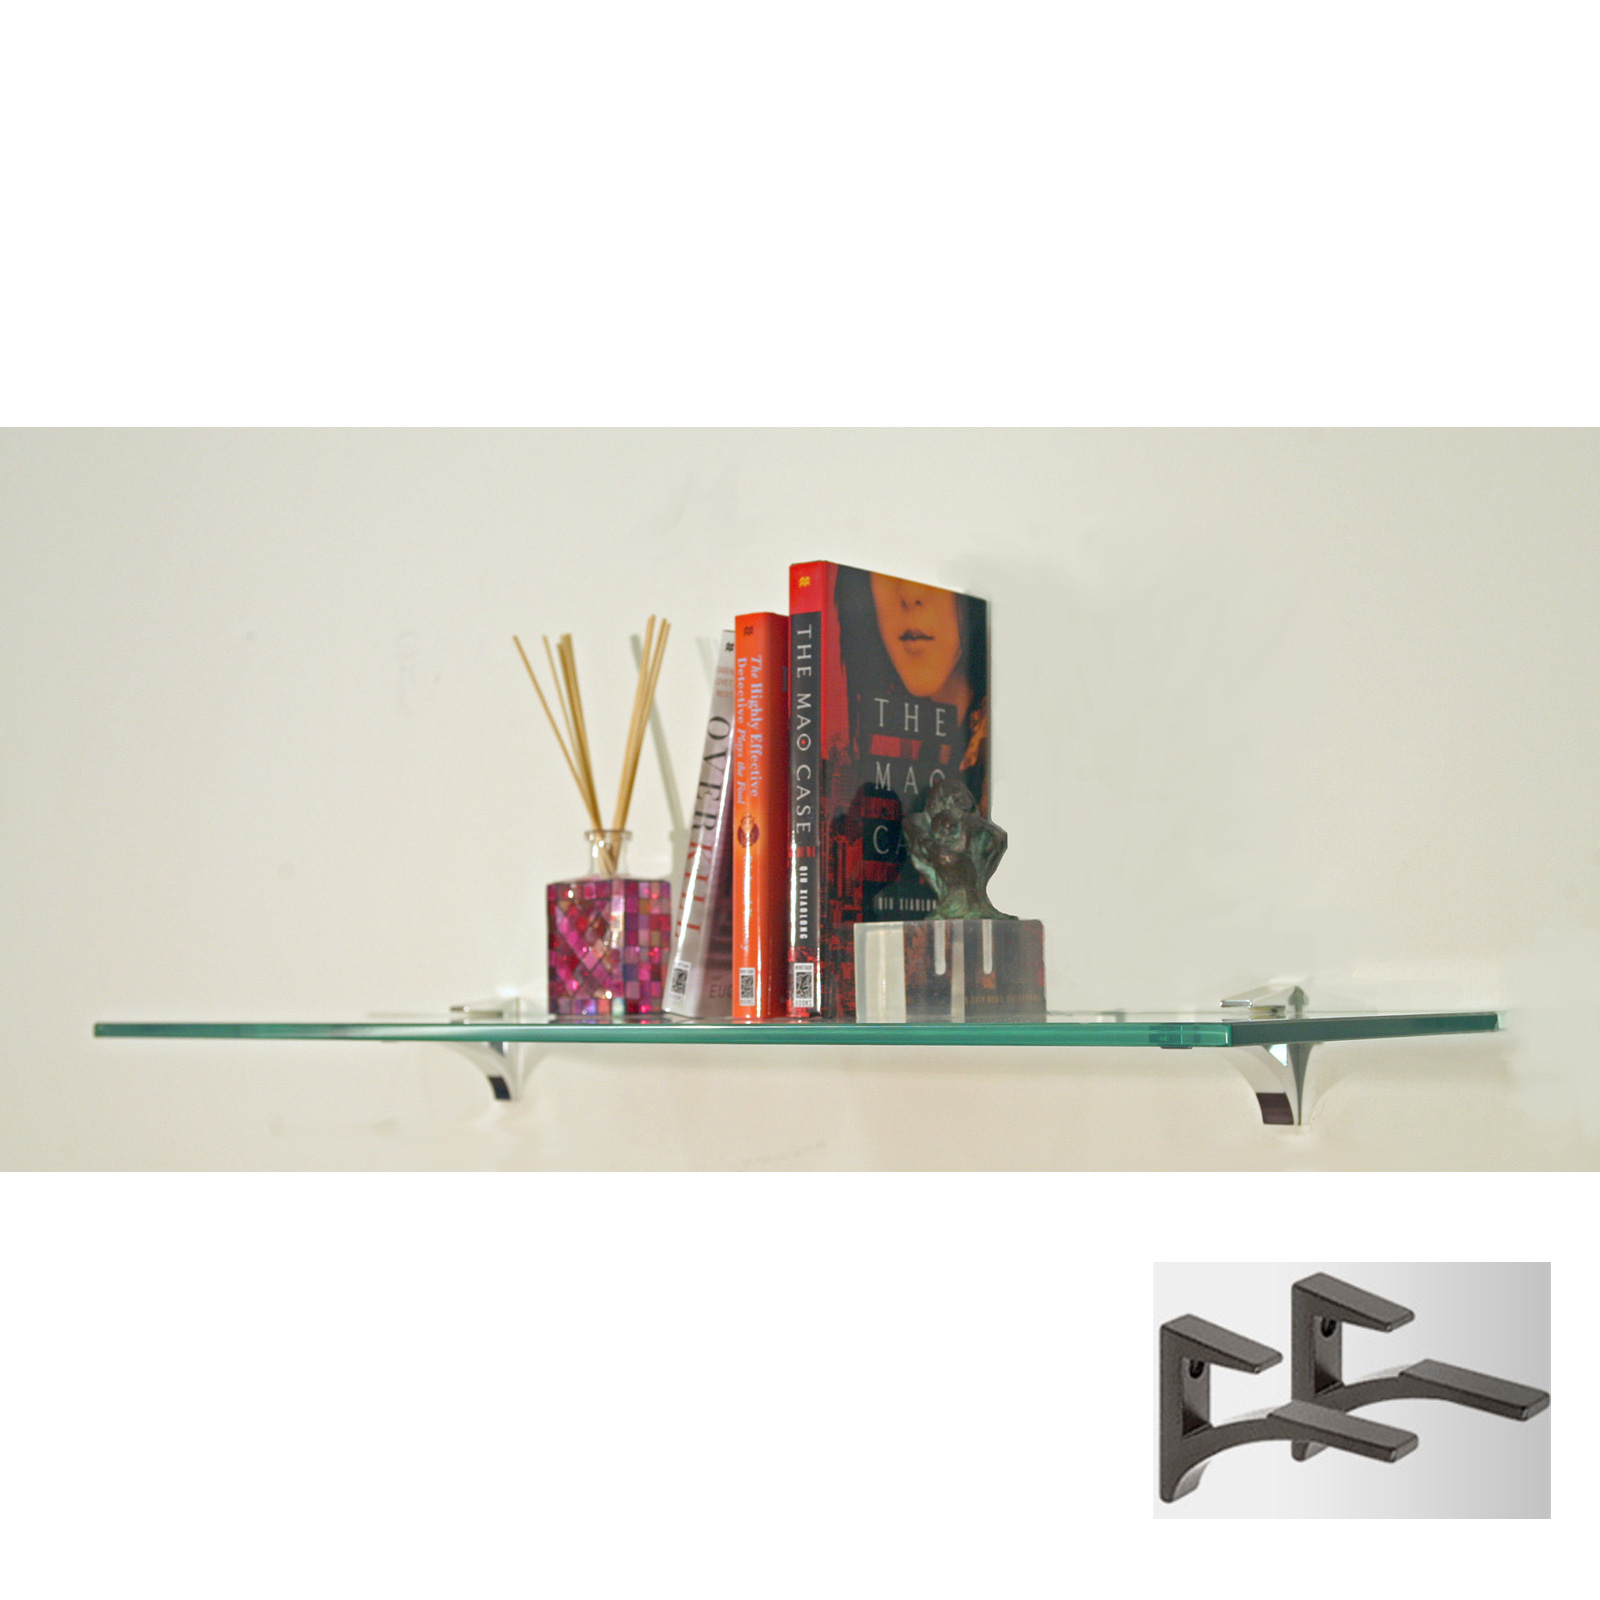 6 Inch Cardinal Display Shelf - Chrome in Wall Mounted Shelves